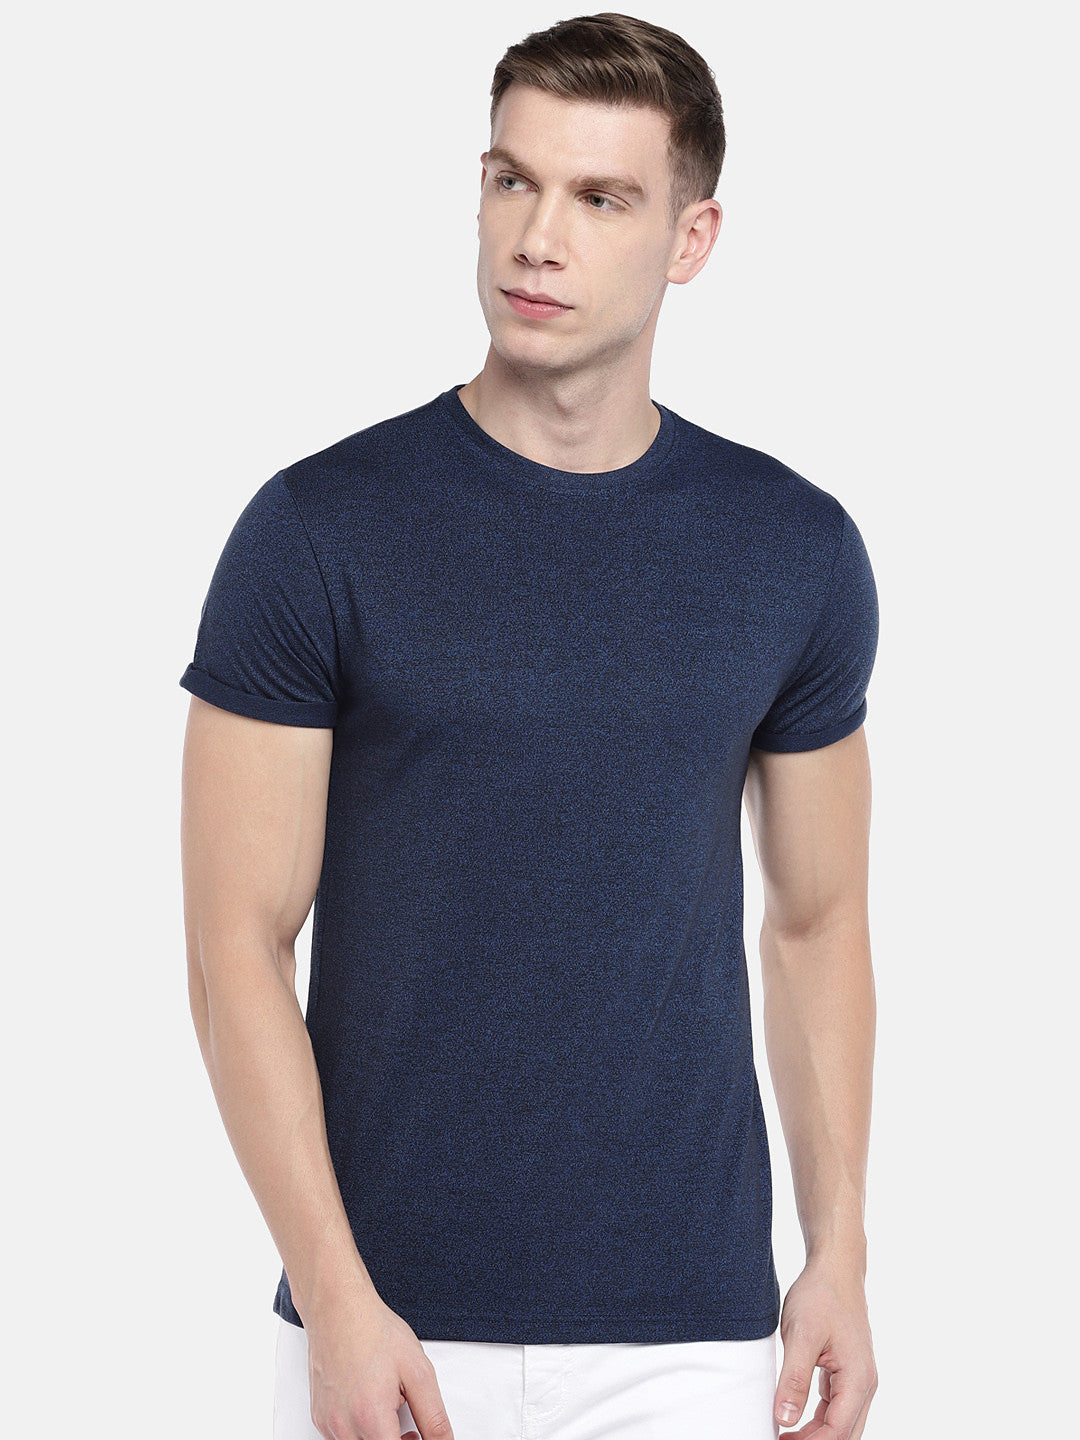 Navy Blue Solid Round Neck T-shirt-1